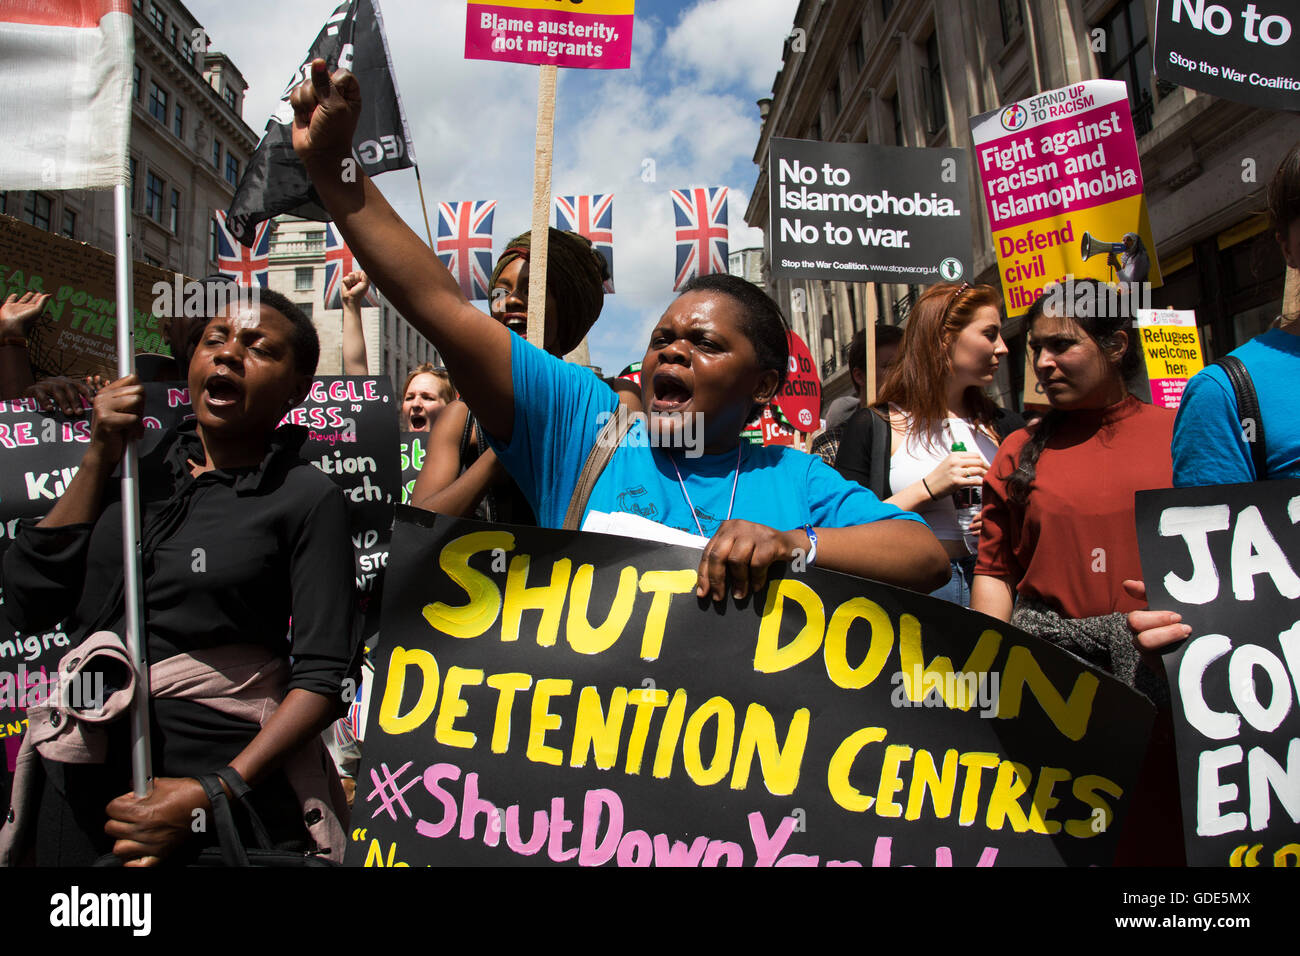 London, UK. 16th July, 2016. Black Lives Matter supporters calling for a shut down of detention centres at the Peoples - Stock Image